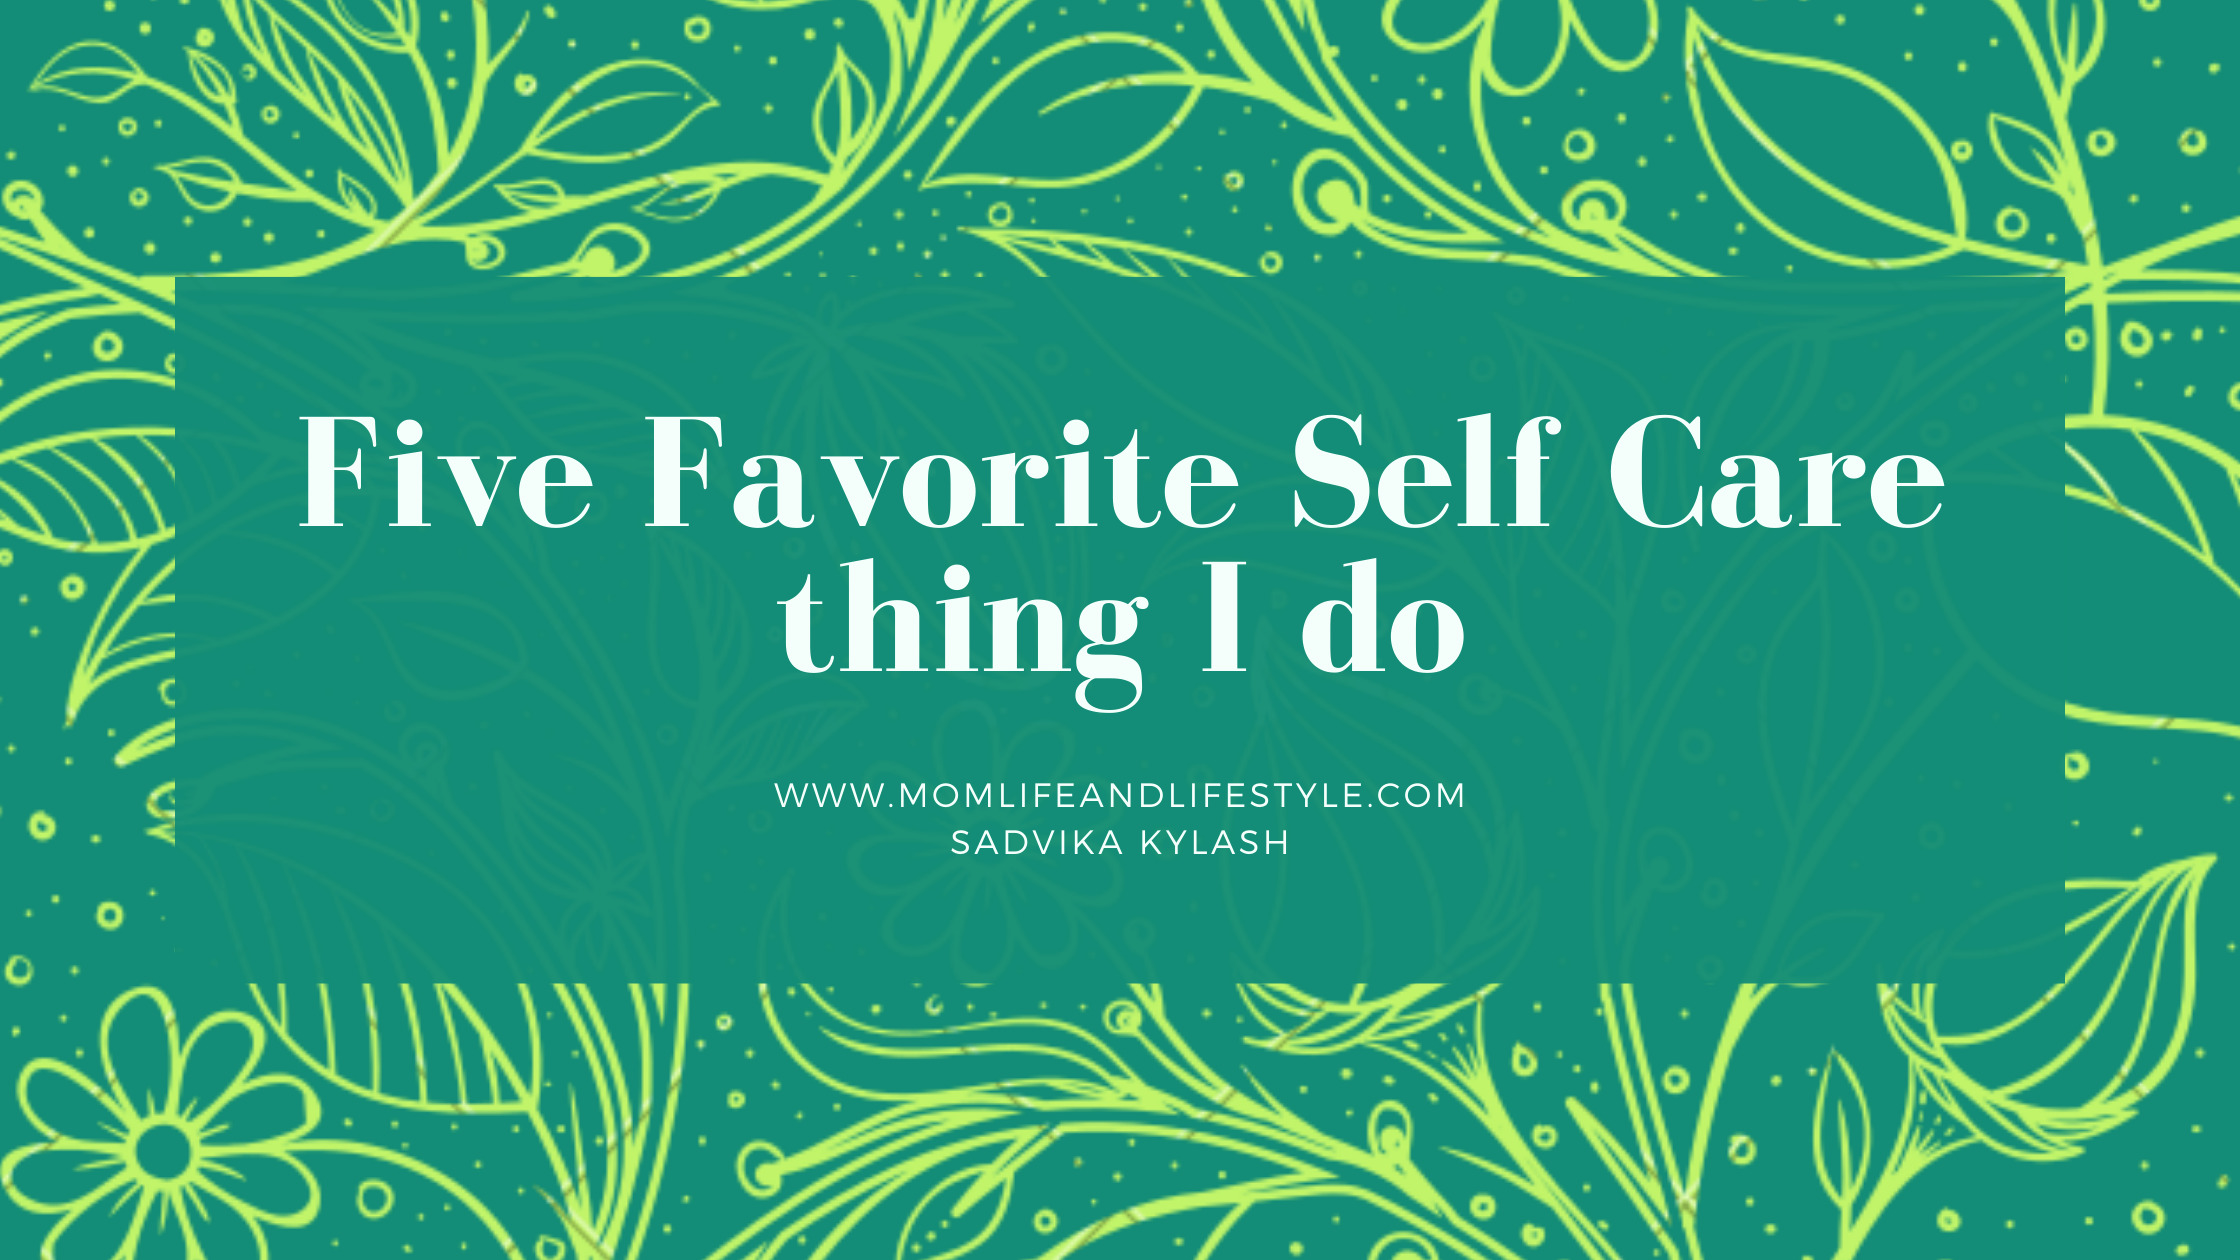 Five favorite Self Care things I do.